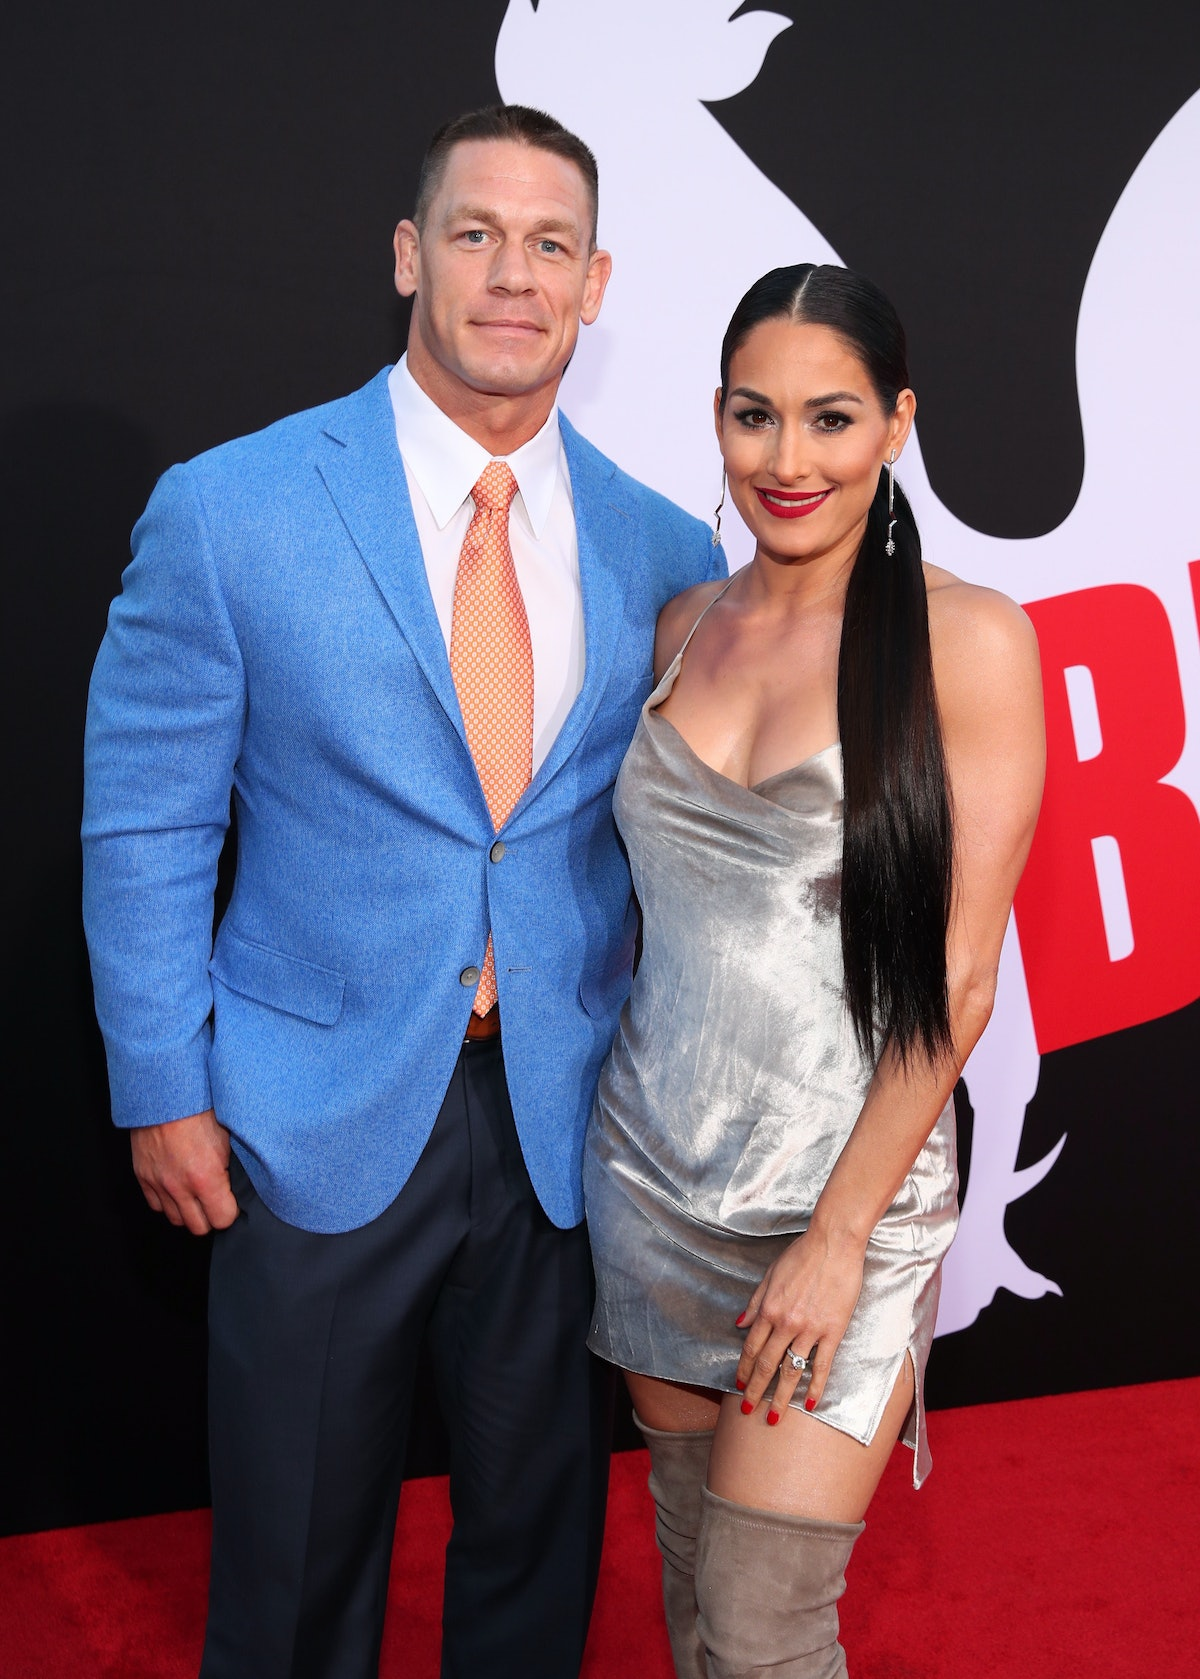 Nikki Bella's Comments About Calling John Cena After Every Date Are Pretty Surprising